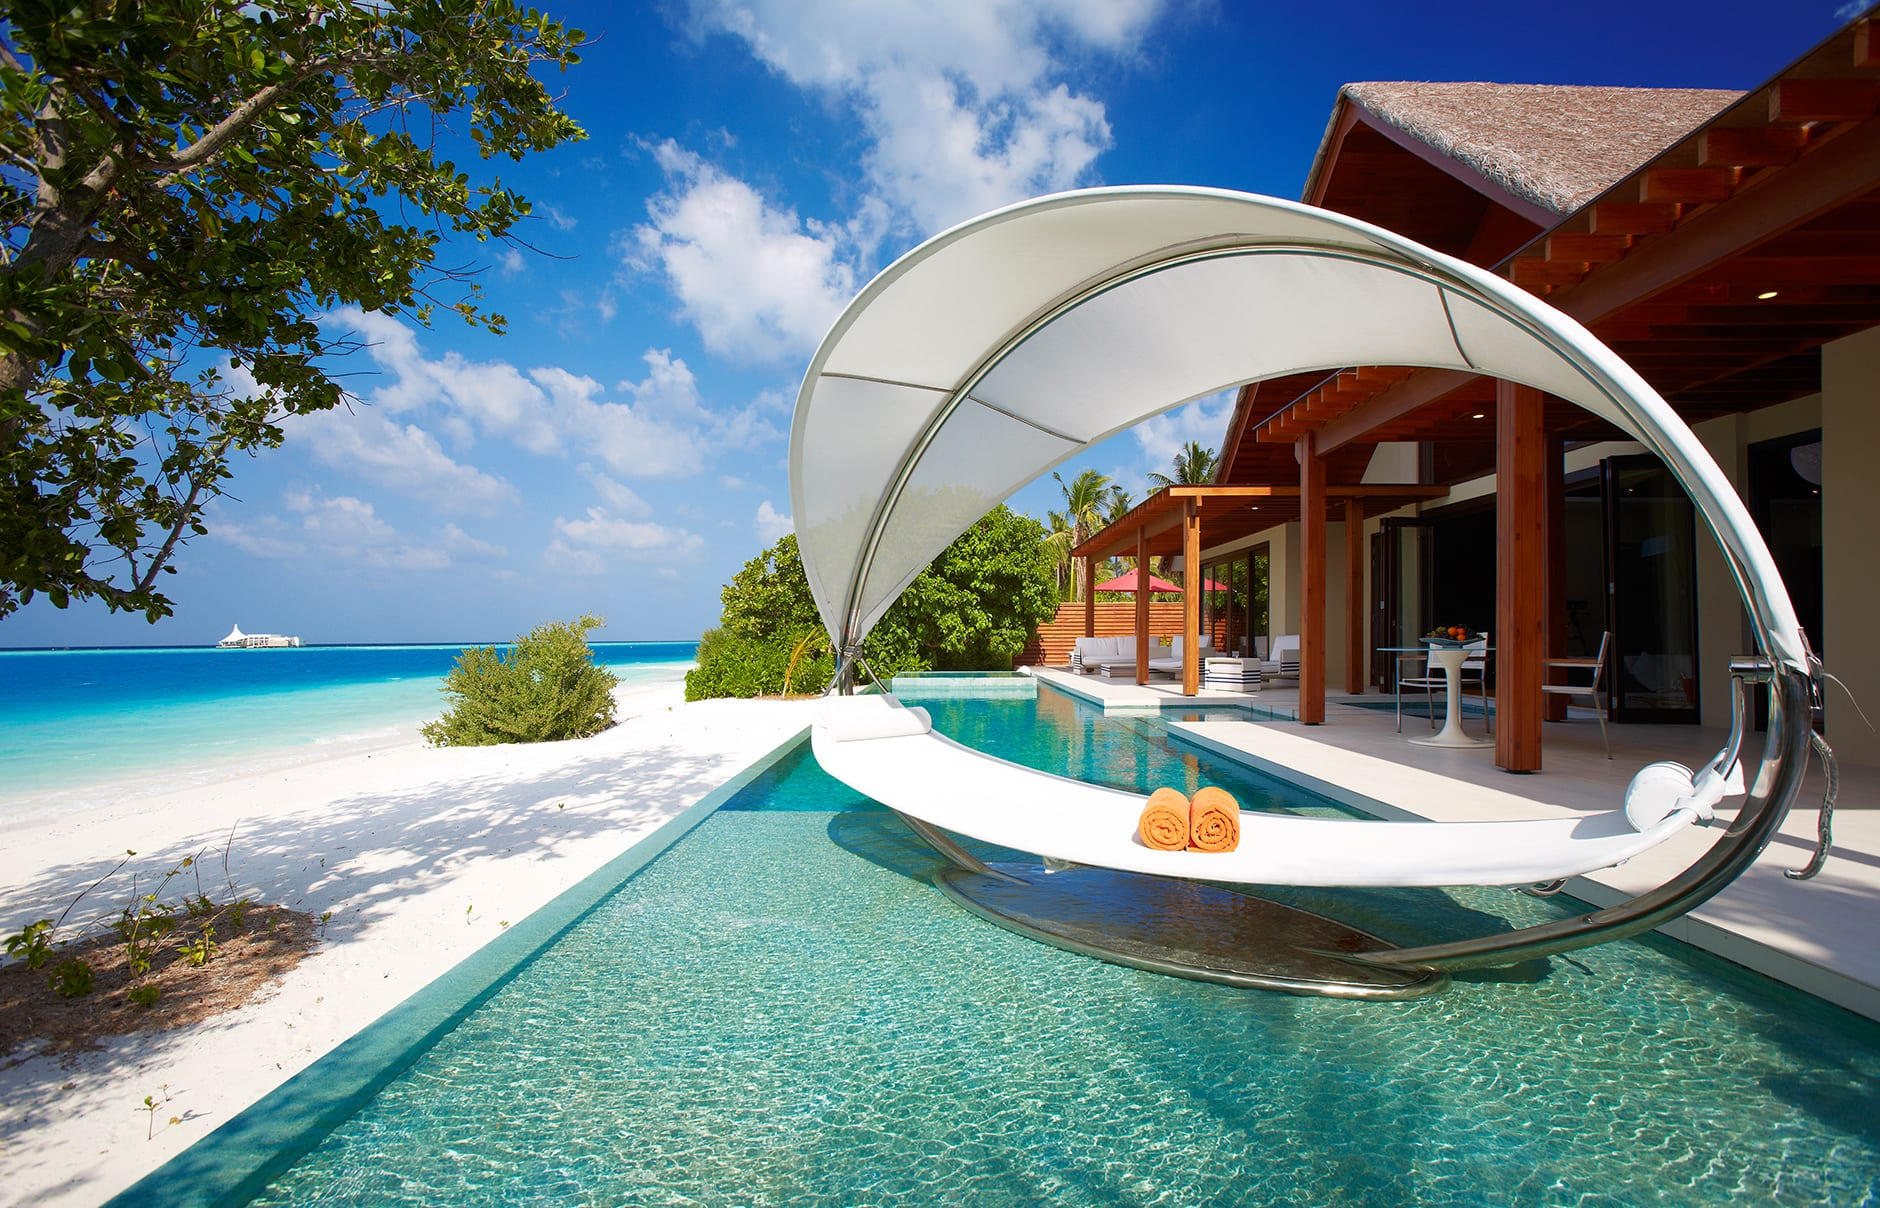 Presidential Beach Pool Villa. Niyama Private Islands Maldives. Hotel Review by TravelPlusStyle. Photo © NIYAMA